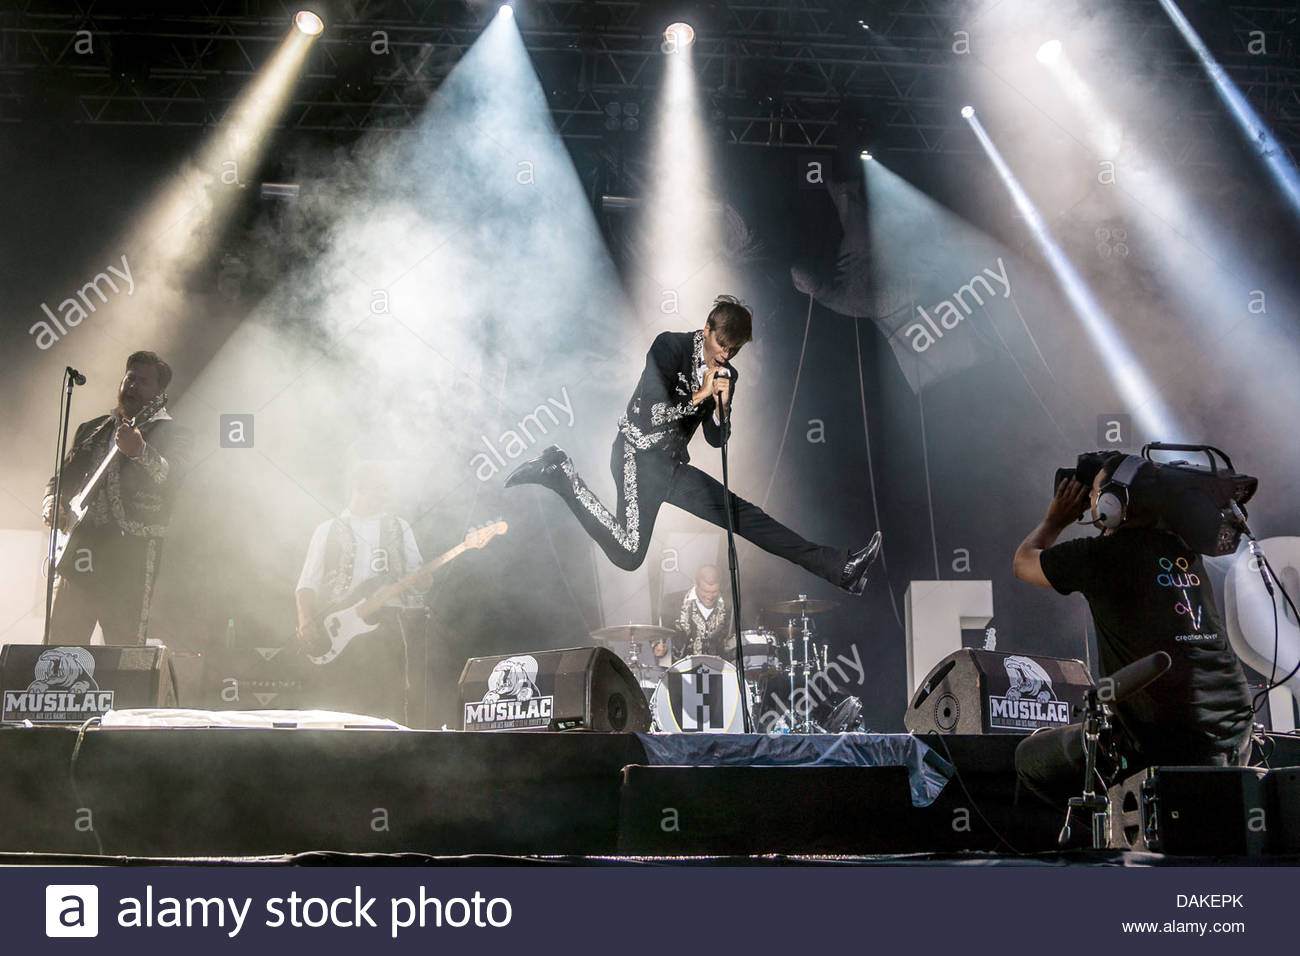 Swedish rock band The Hives performing live - Stock Image